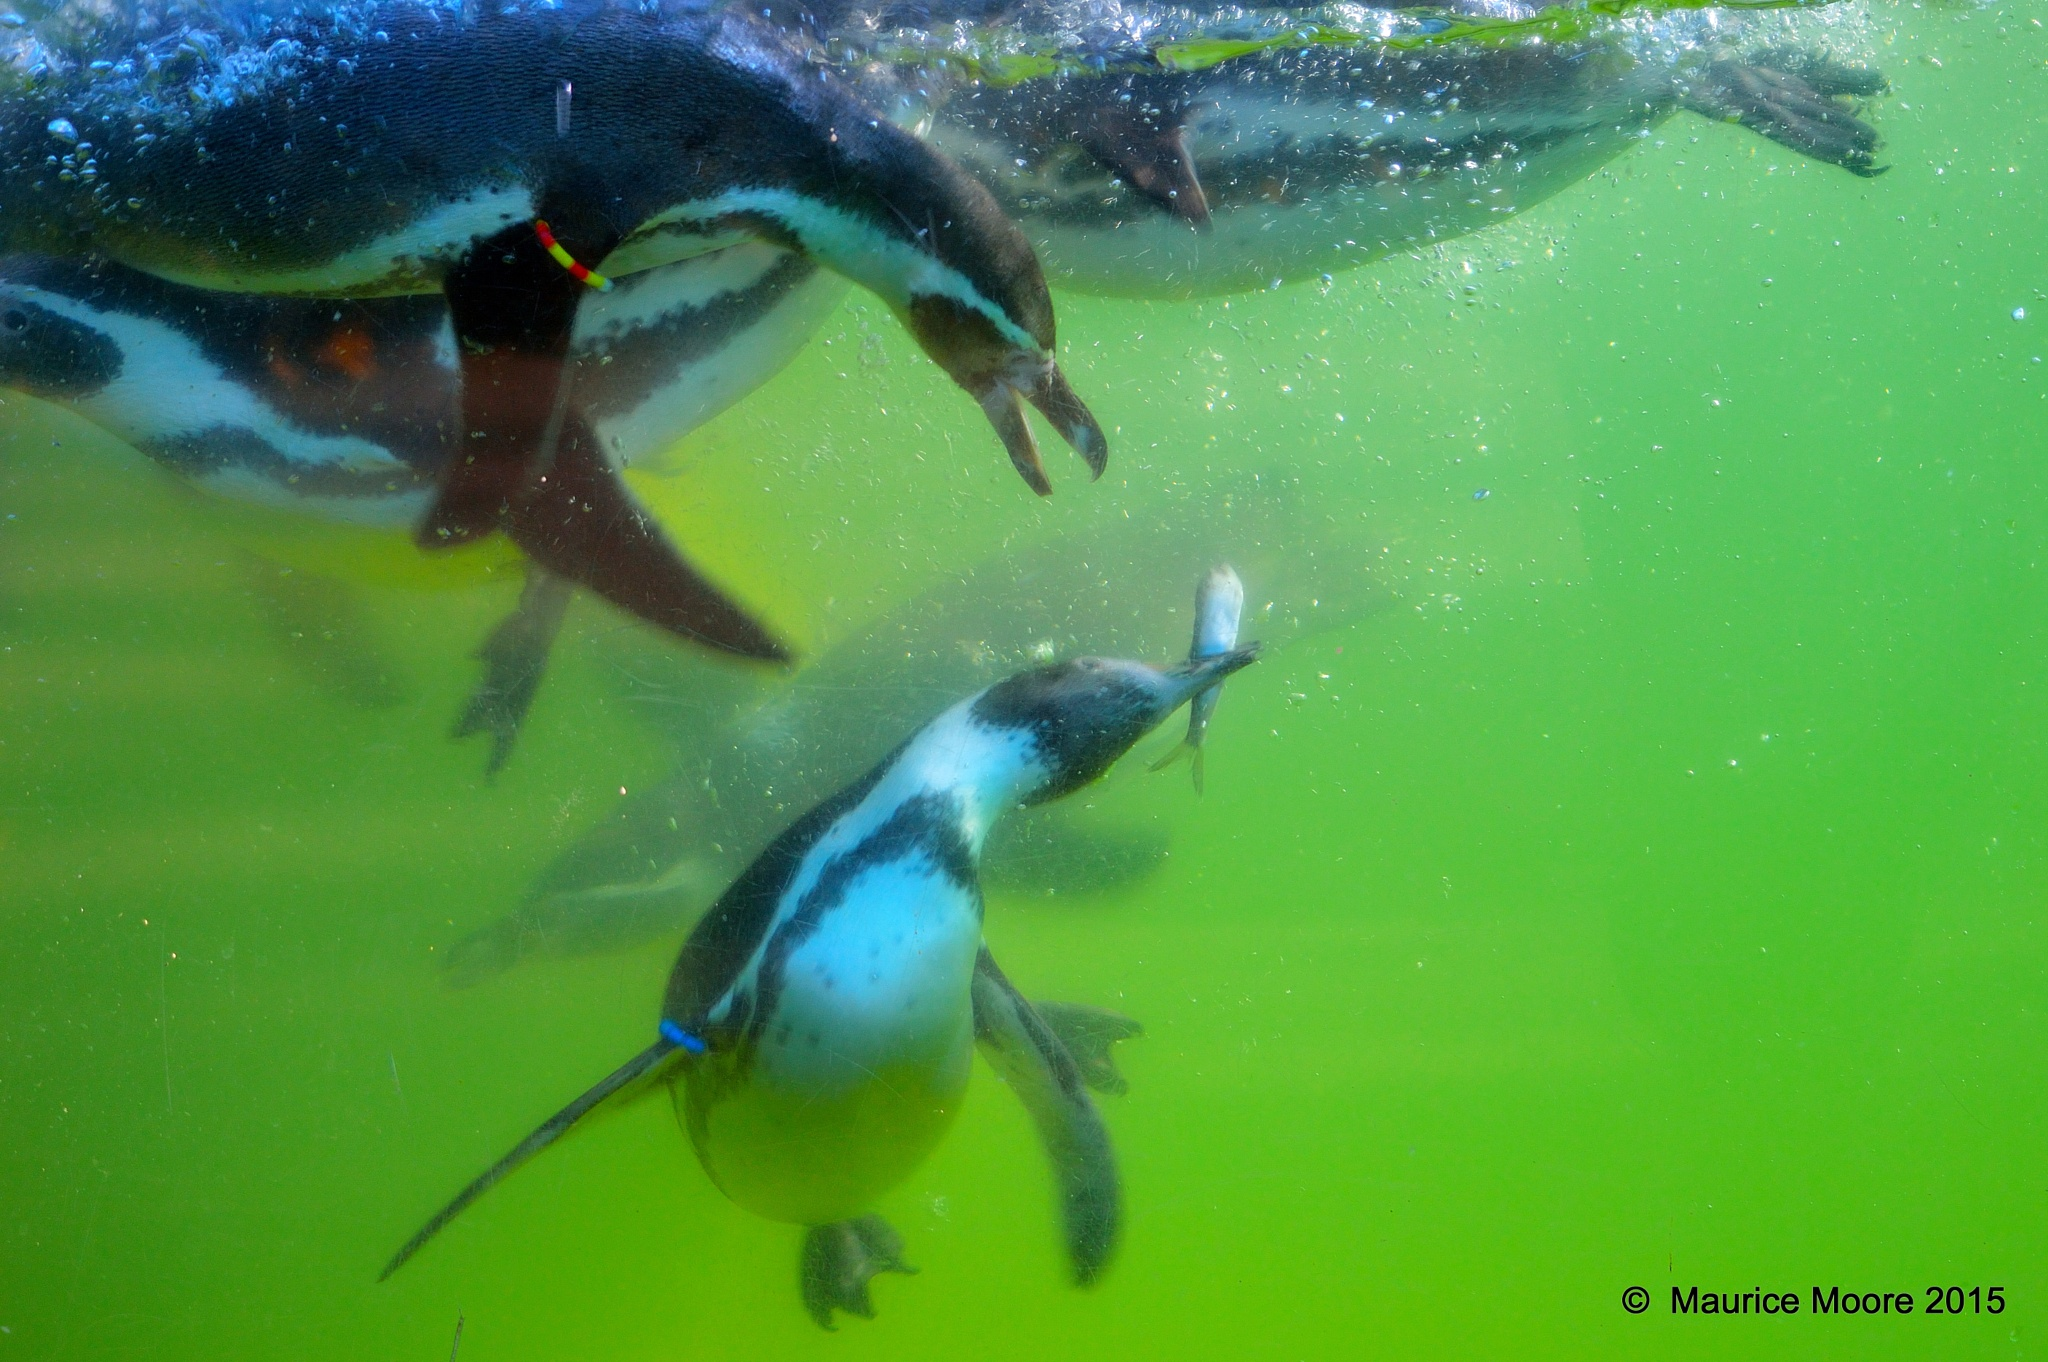 Feeding Time fot the Humboldt Penguins by Maurice Moore